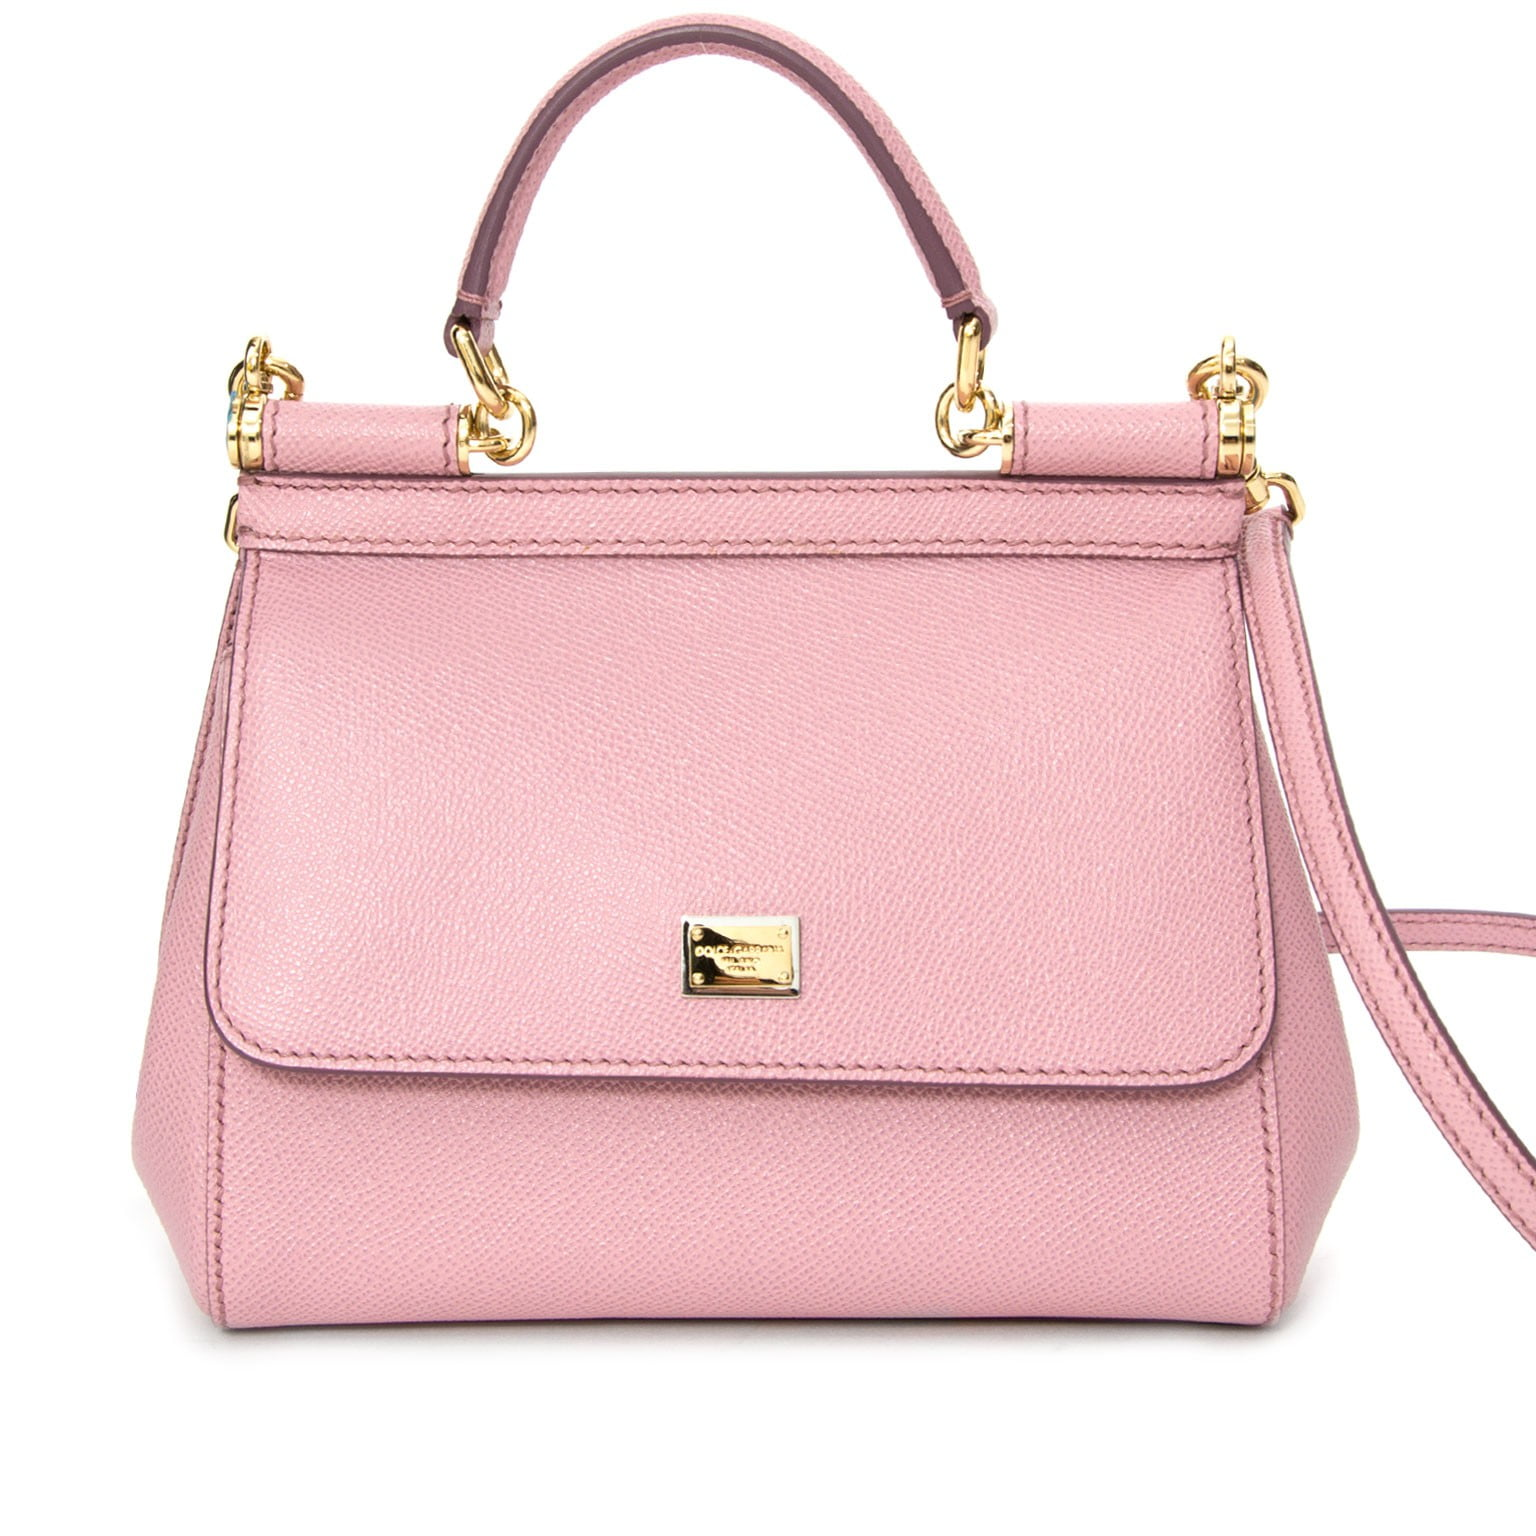 You Know Pursebop Absolutely Loves Top Handle Bags So Naturally The Dolce Gabbana Miss Sicily Is Another Bag We Can T Help But Admire